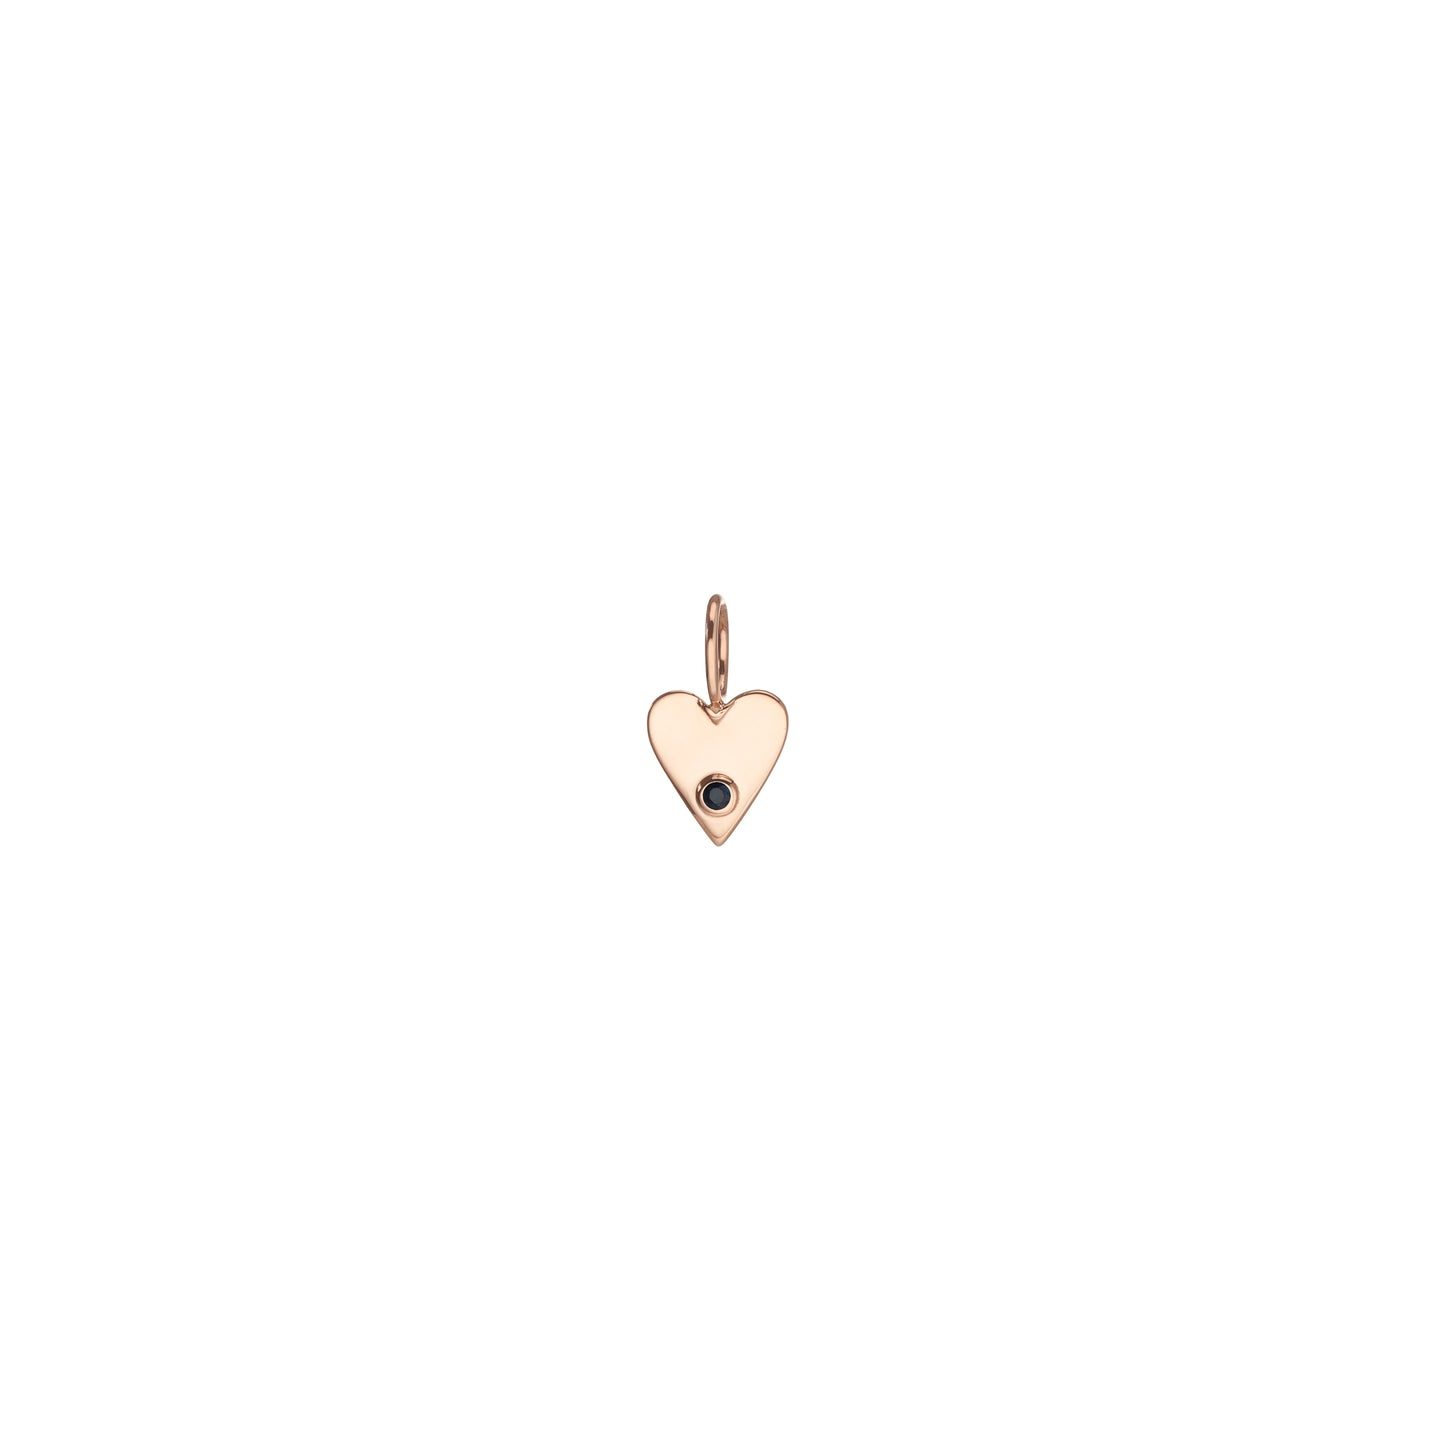 Small Birthstone Heart